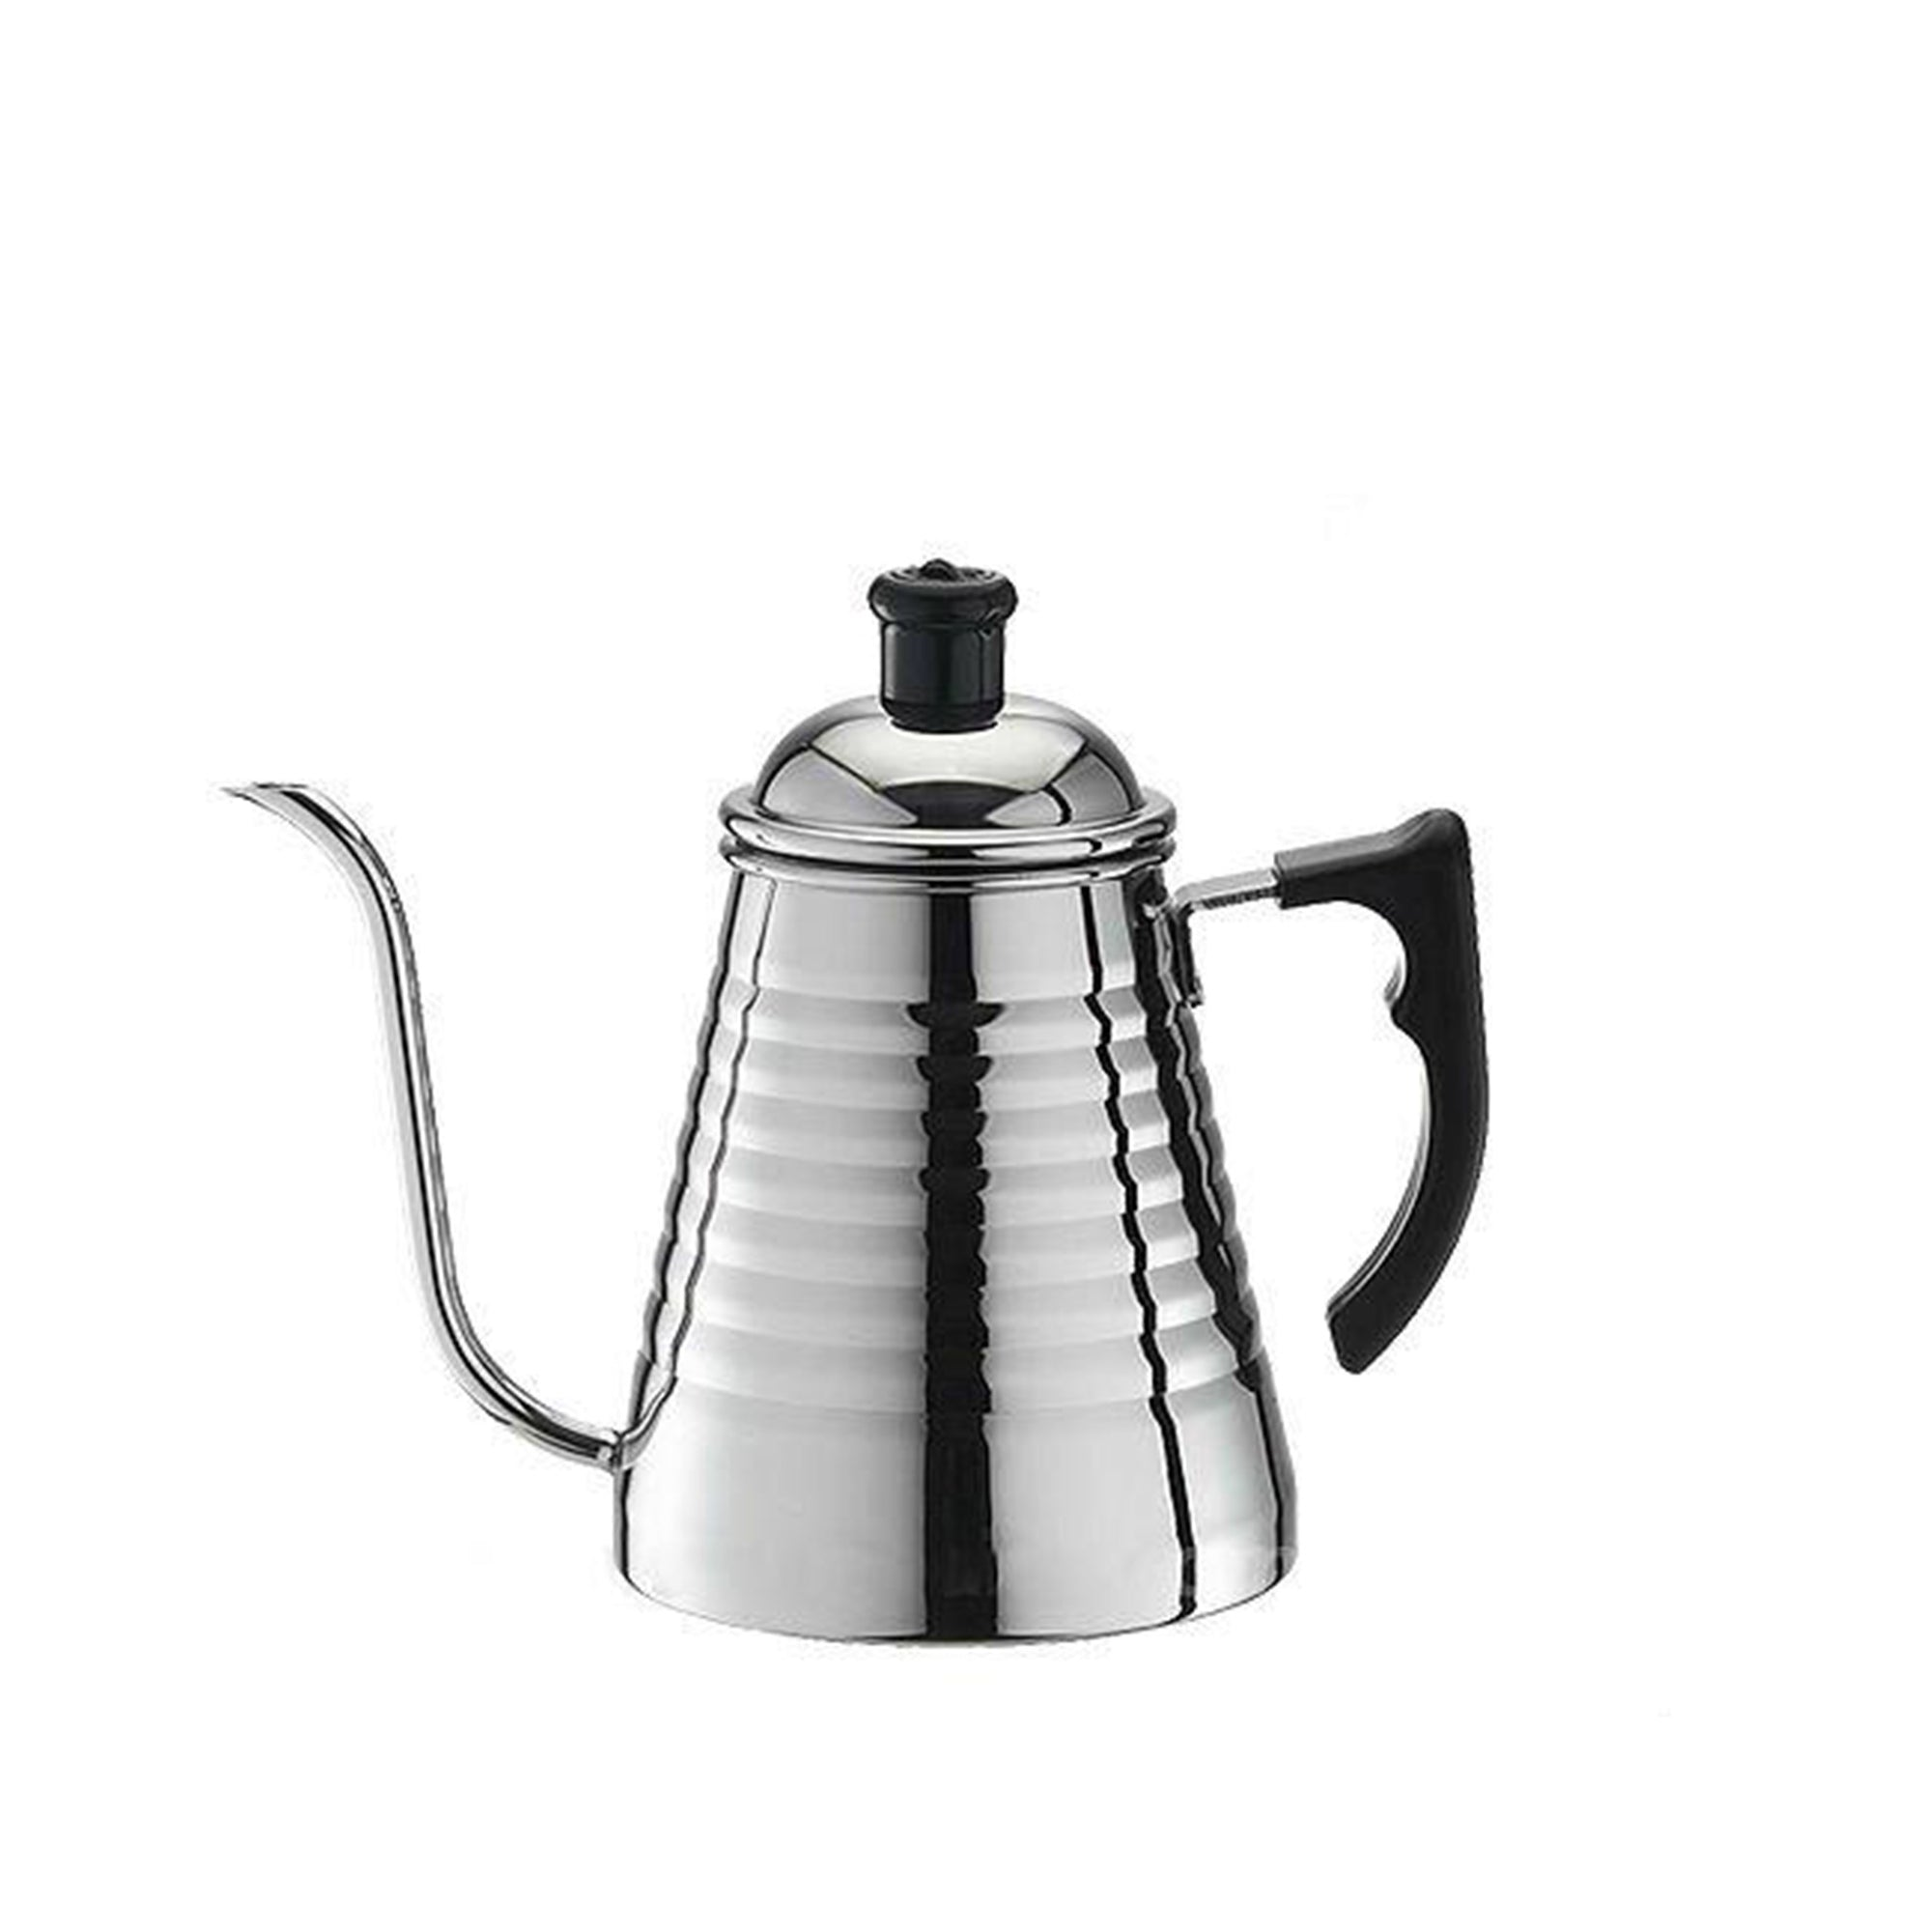 Kettle Tower 0.7L - Tiamo - Espresso Gear